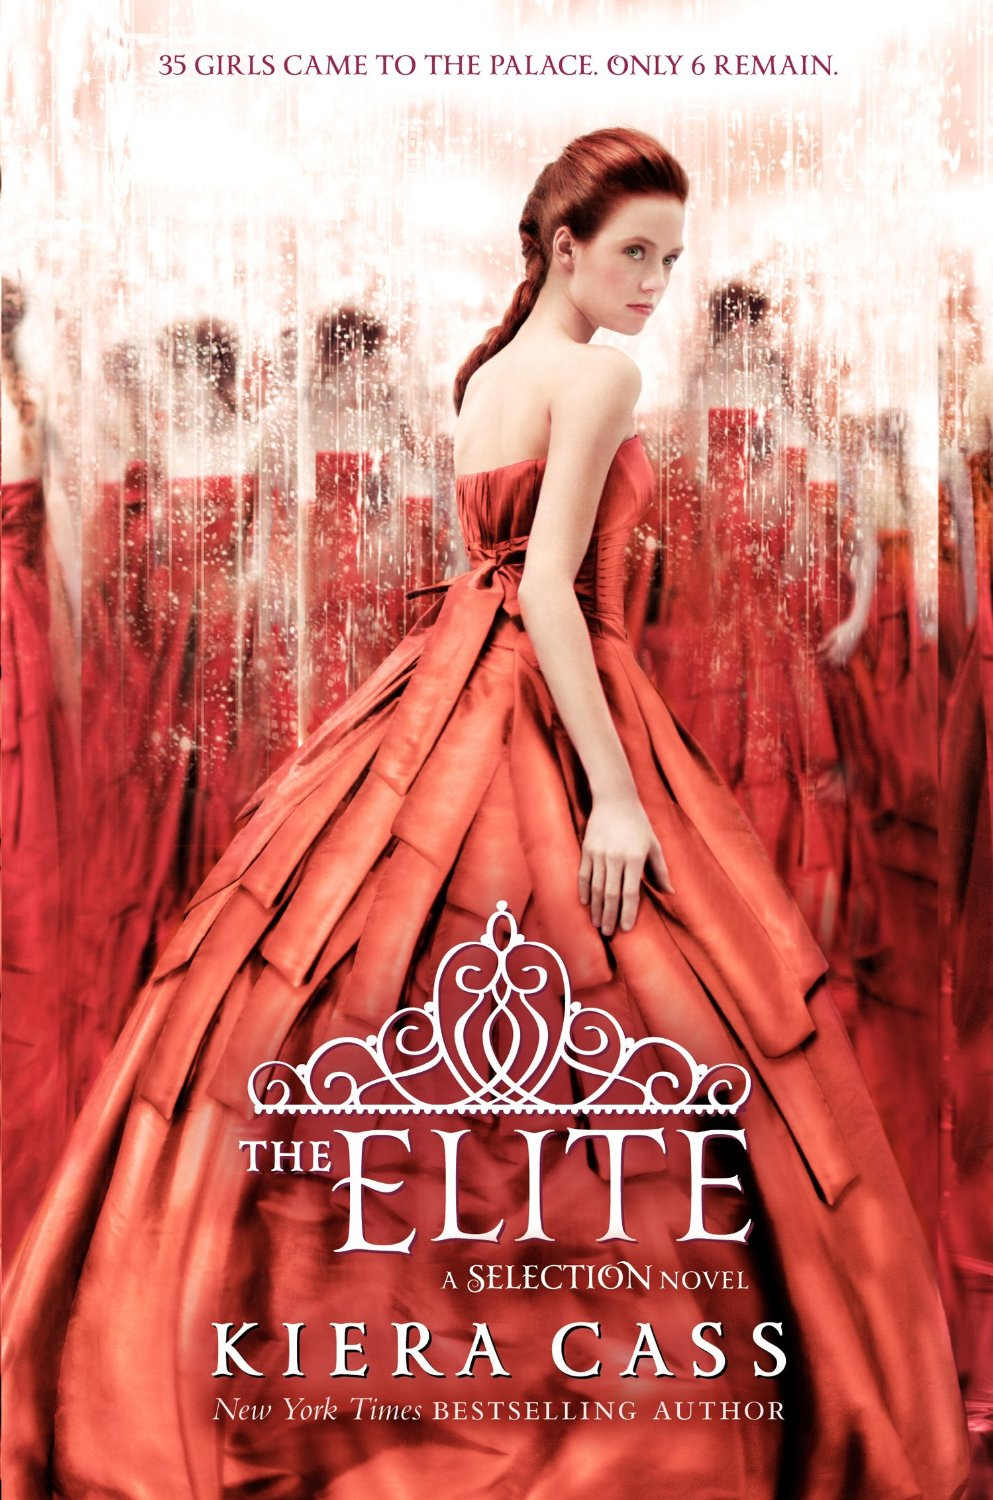 Review – The Elite by Kiera Cass